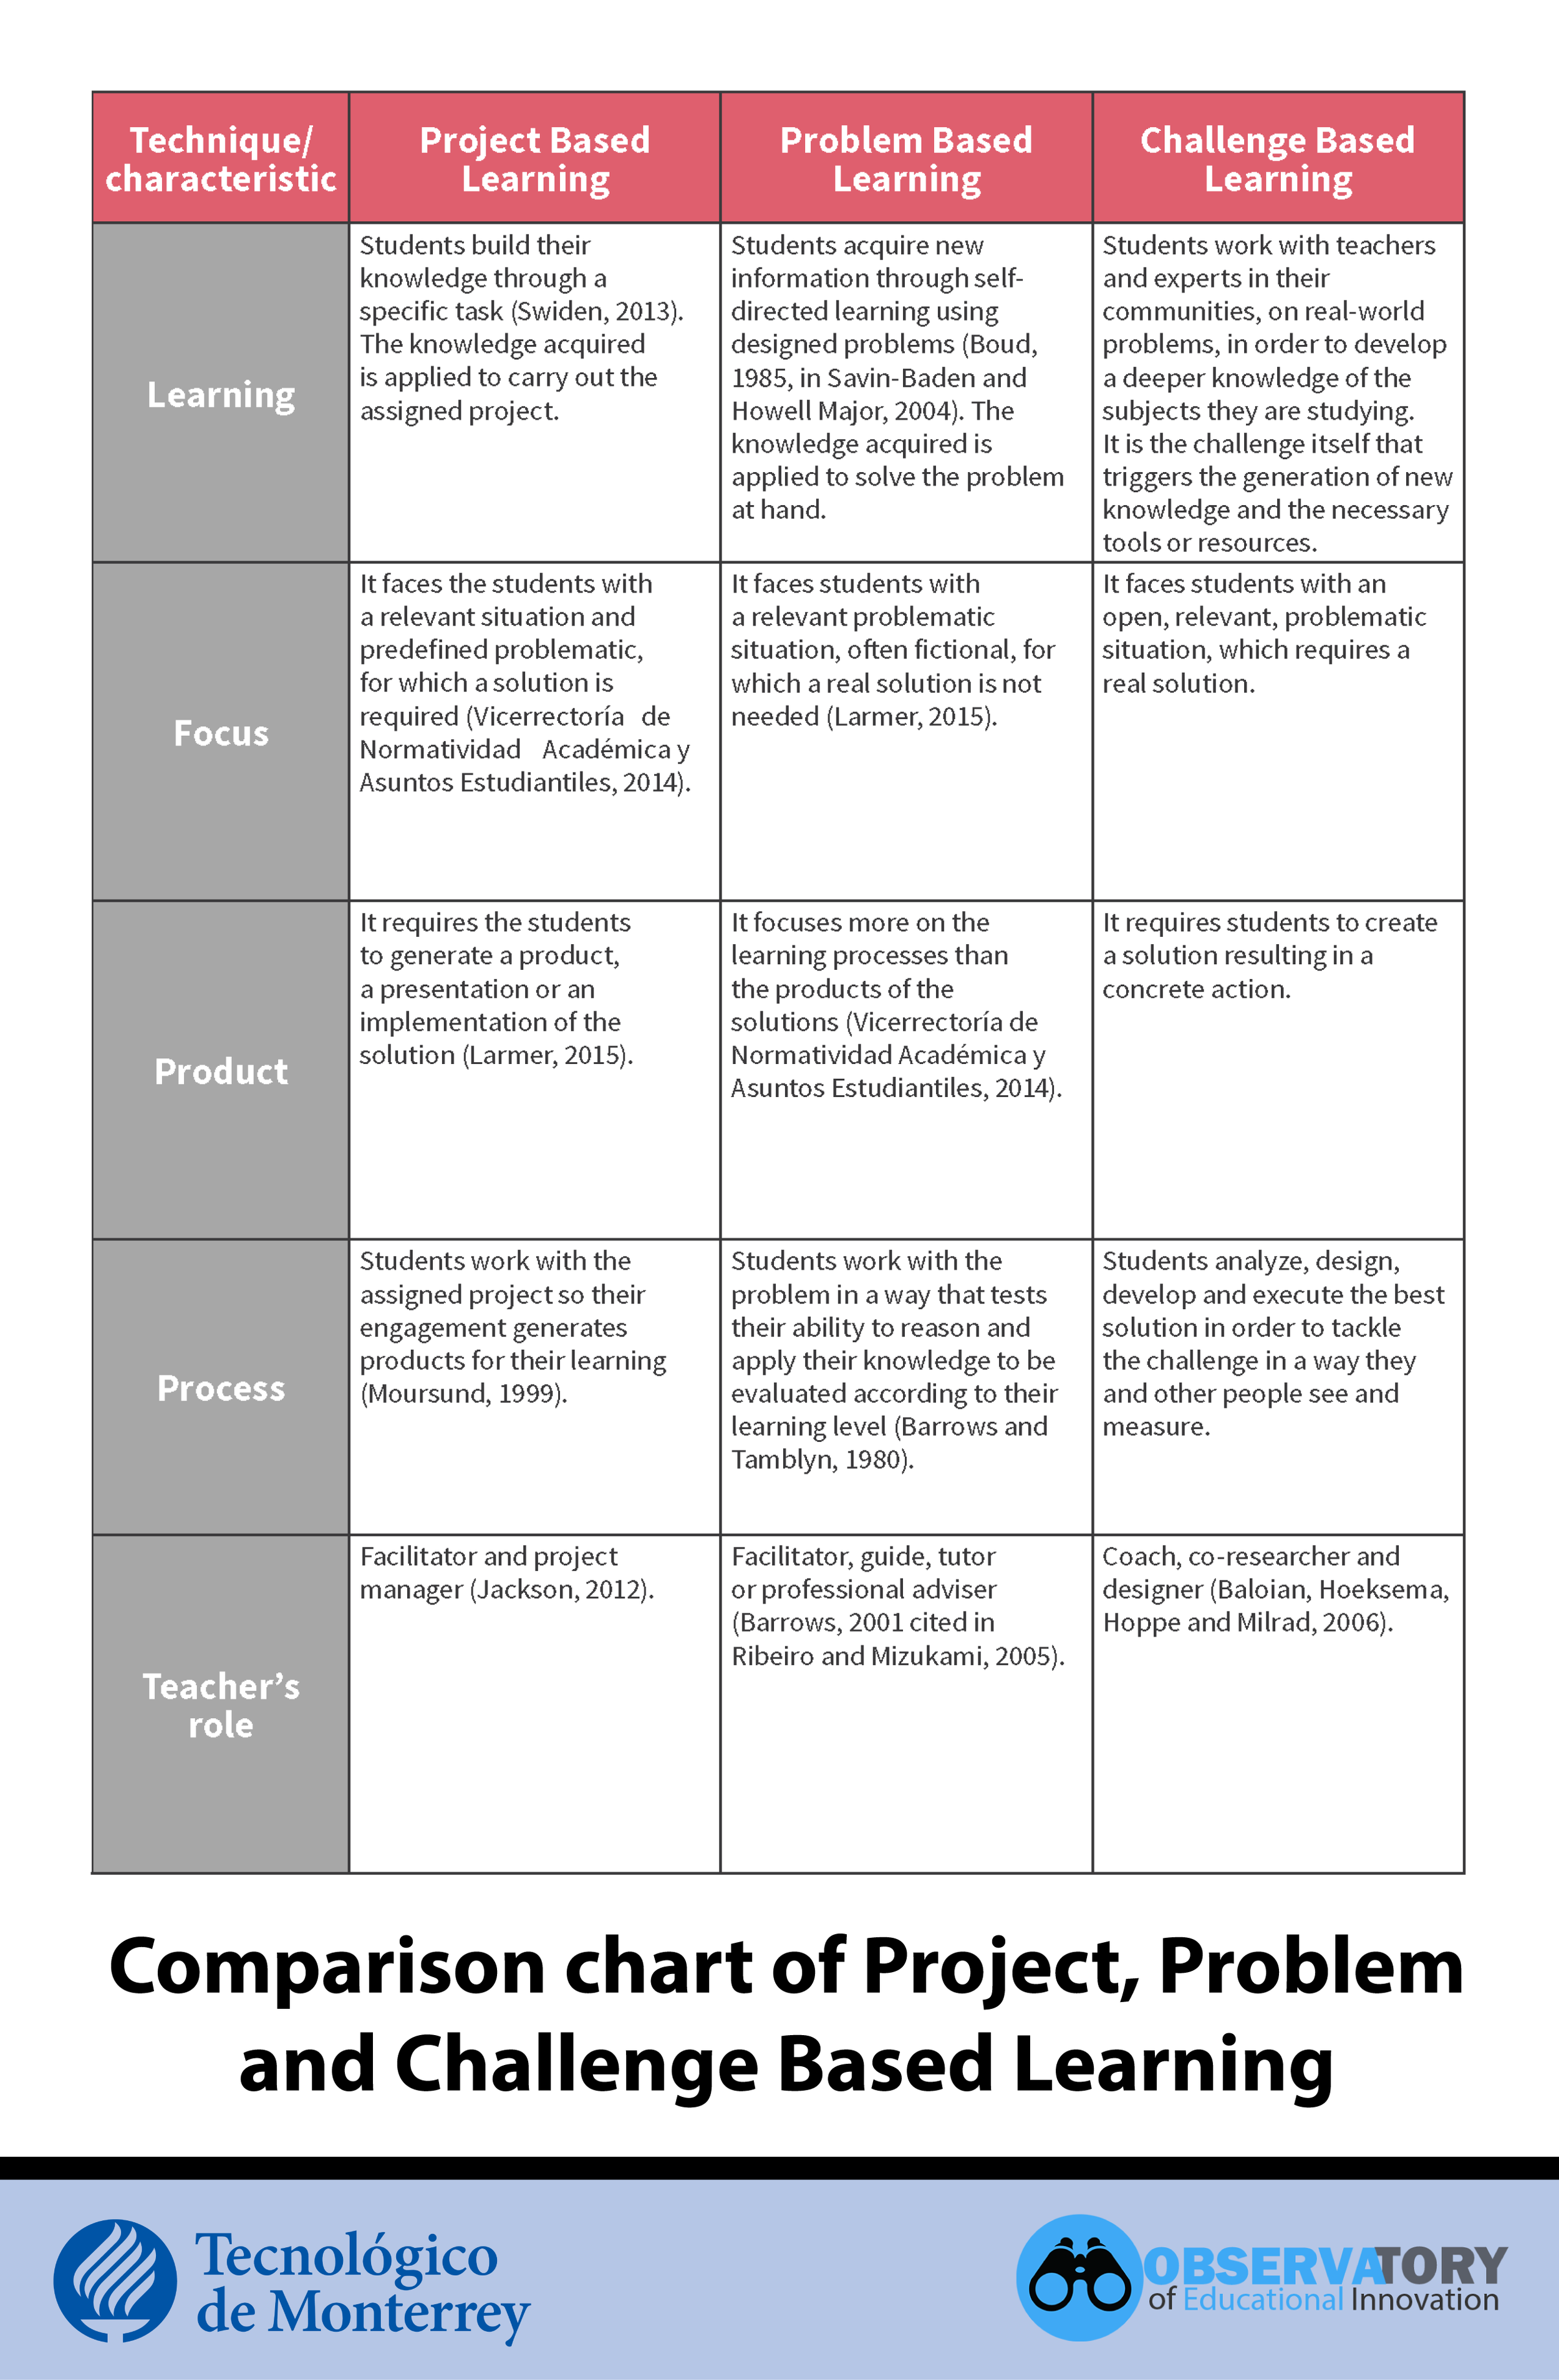 Project, problem and challenge based learning